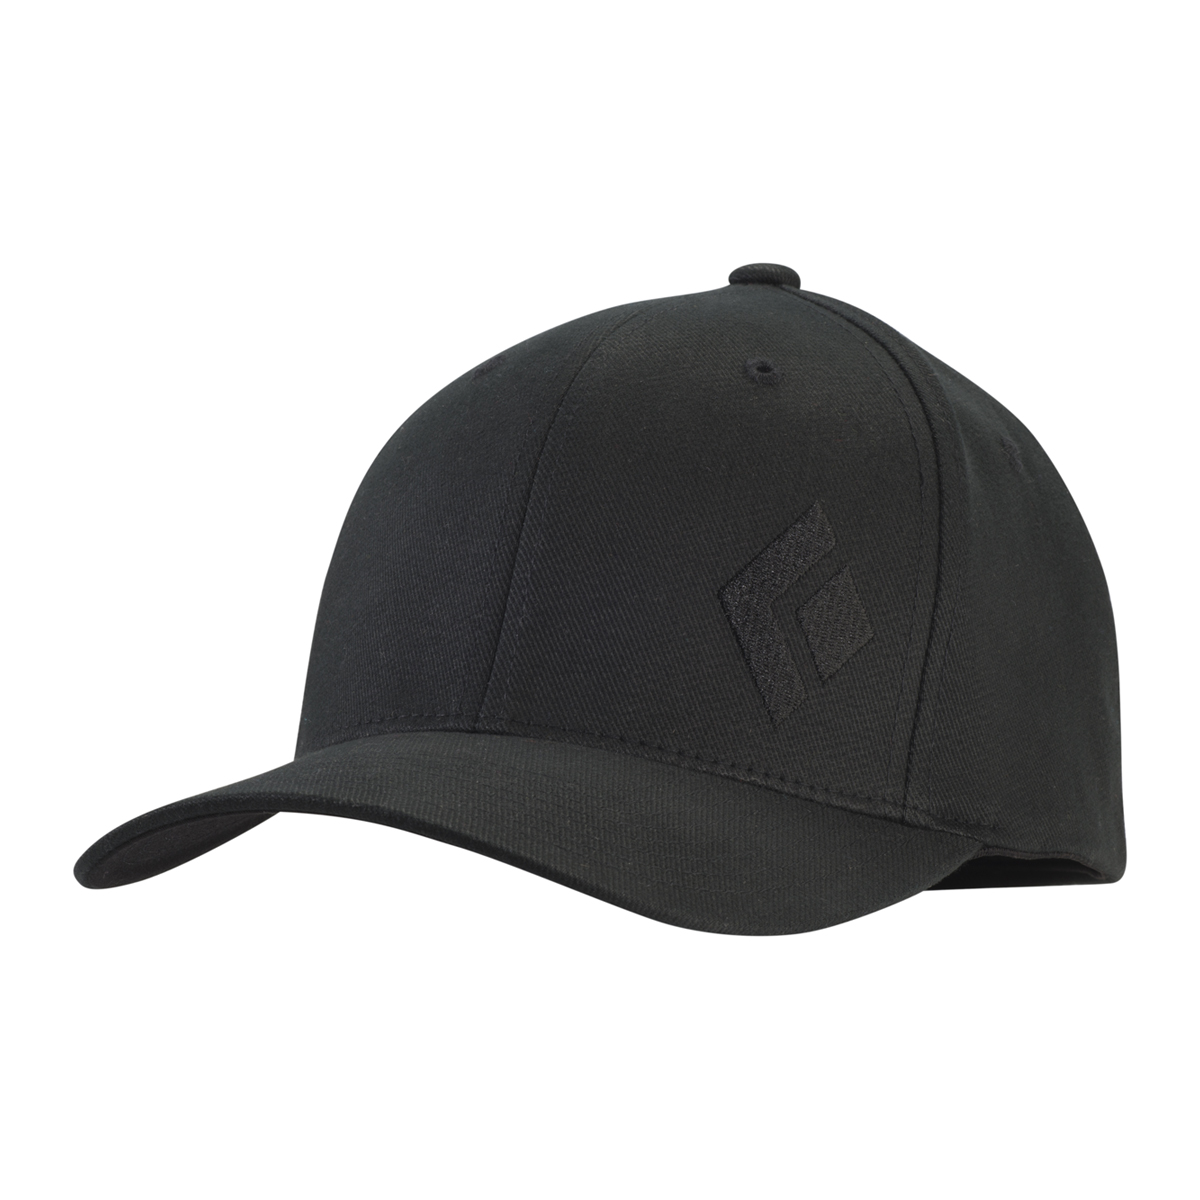 Black Diamond Cap black Logo